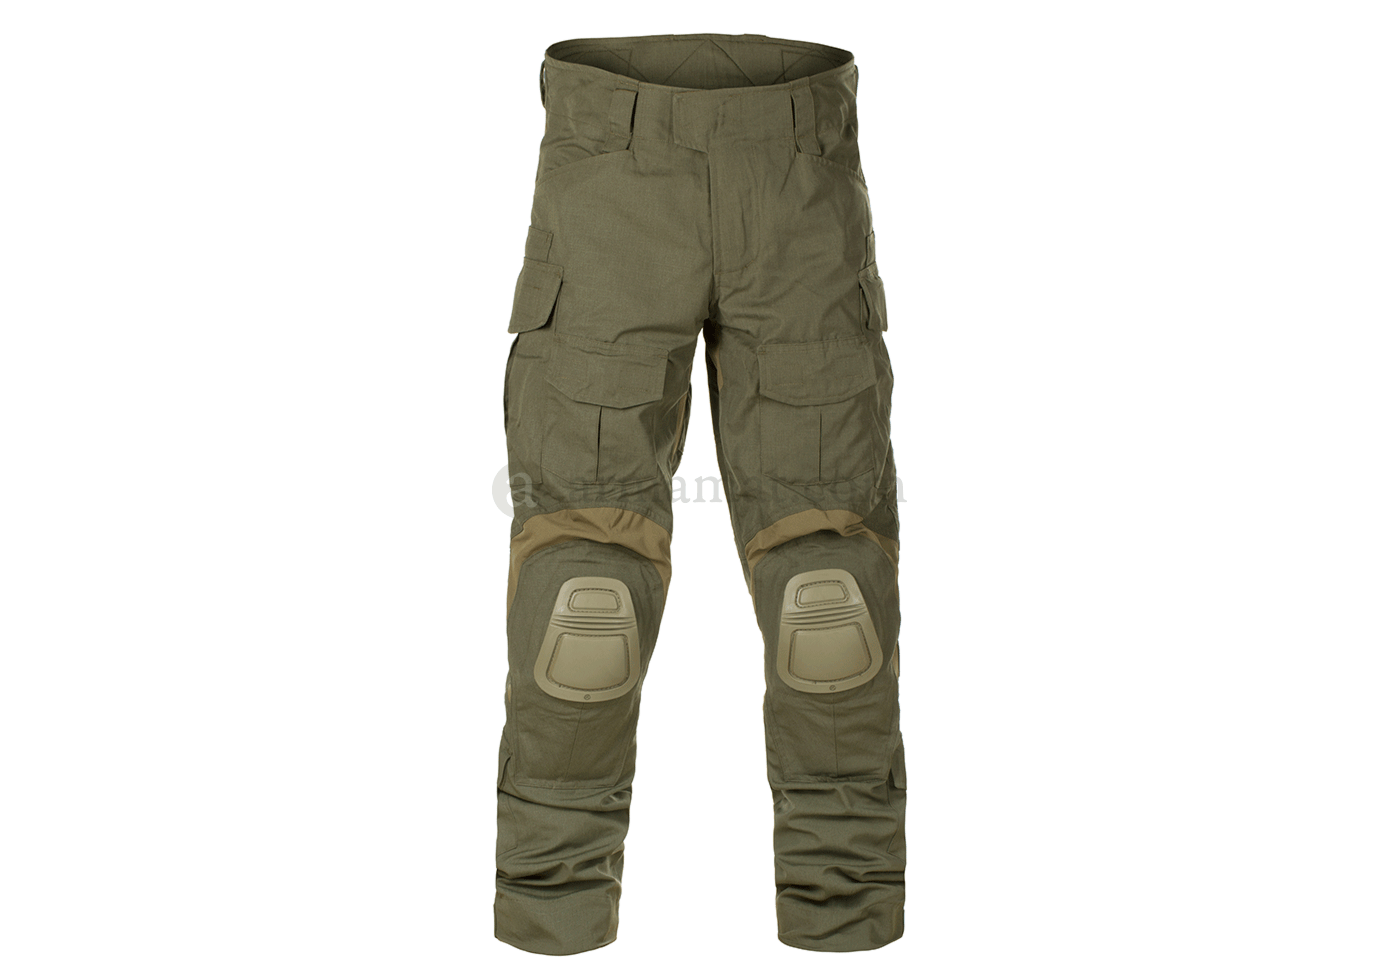 TRU-SPEC®'s new Series® Xpedition Pants® are the functional, durable, comfortable, versatile, and dependable outdoor tactical pants that you have been looking for! Learn More Sign up for exclusive deals & product news.